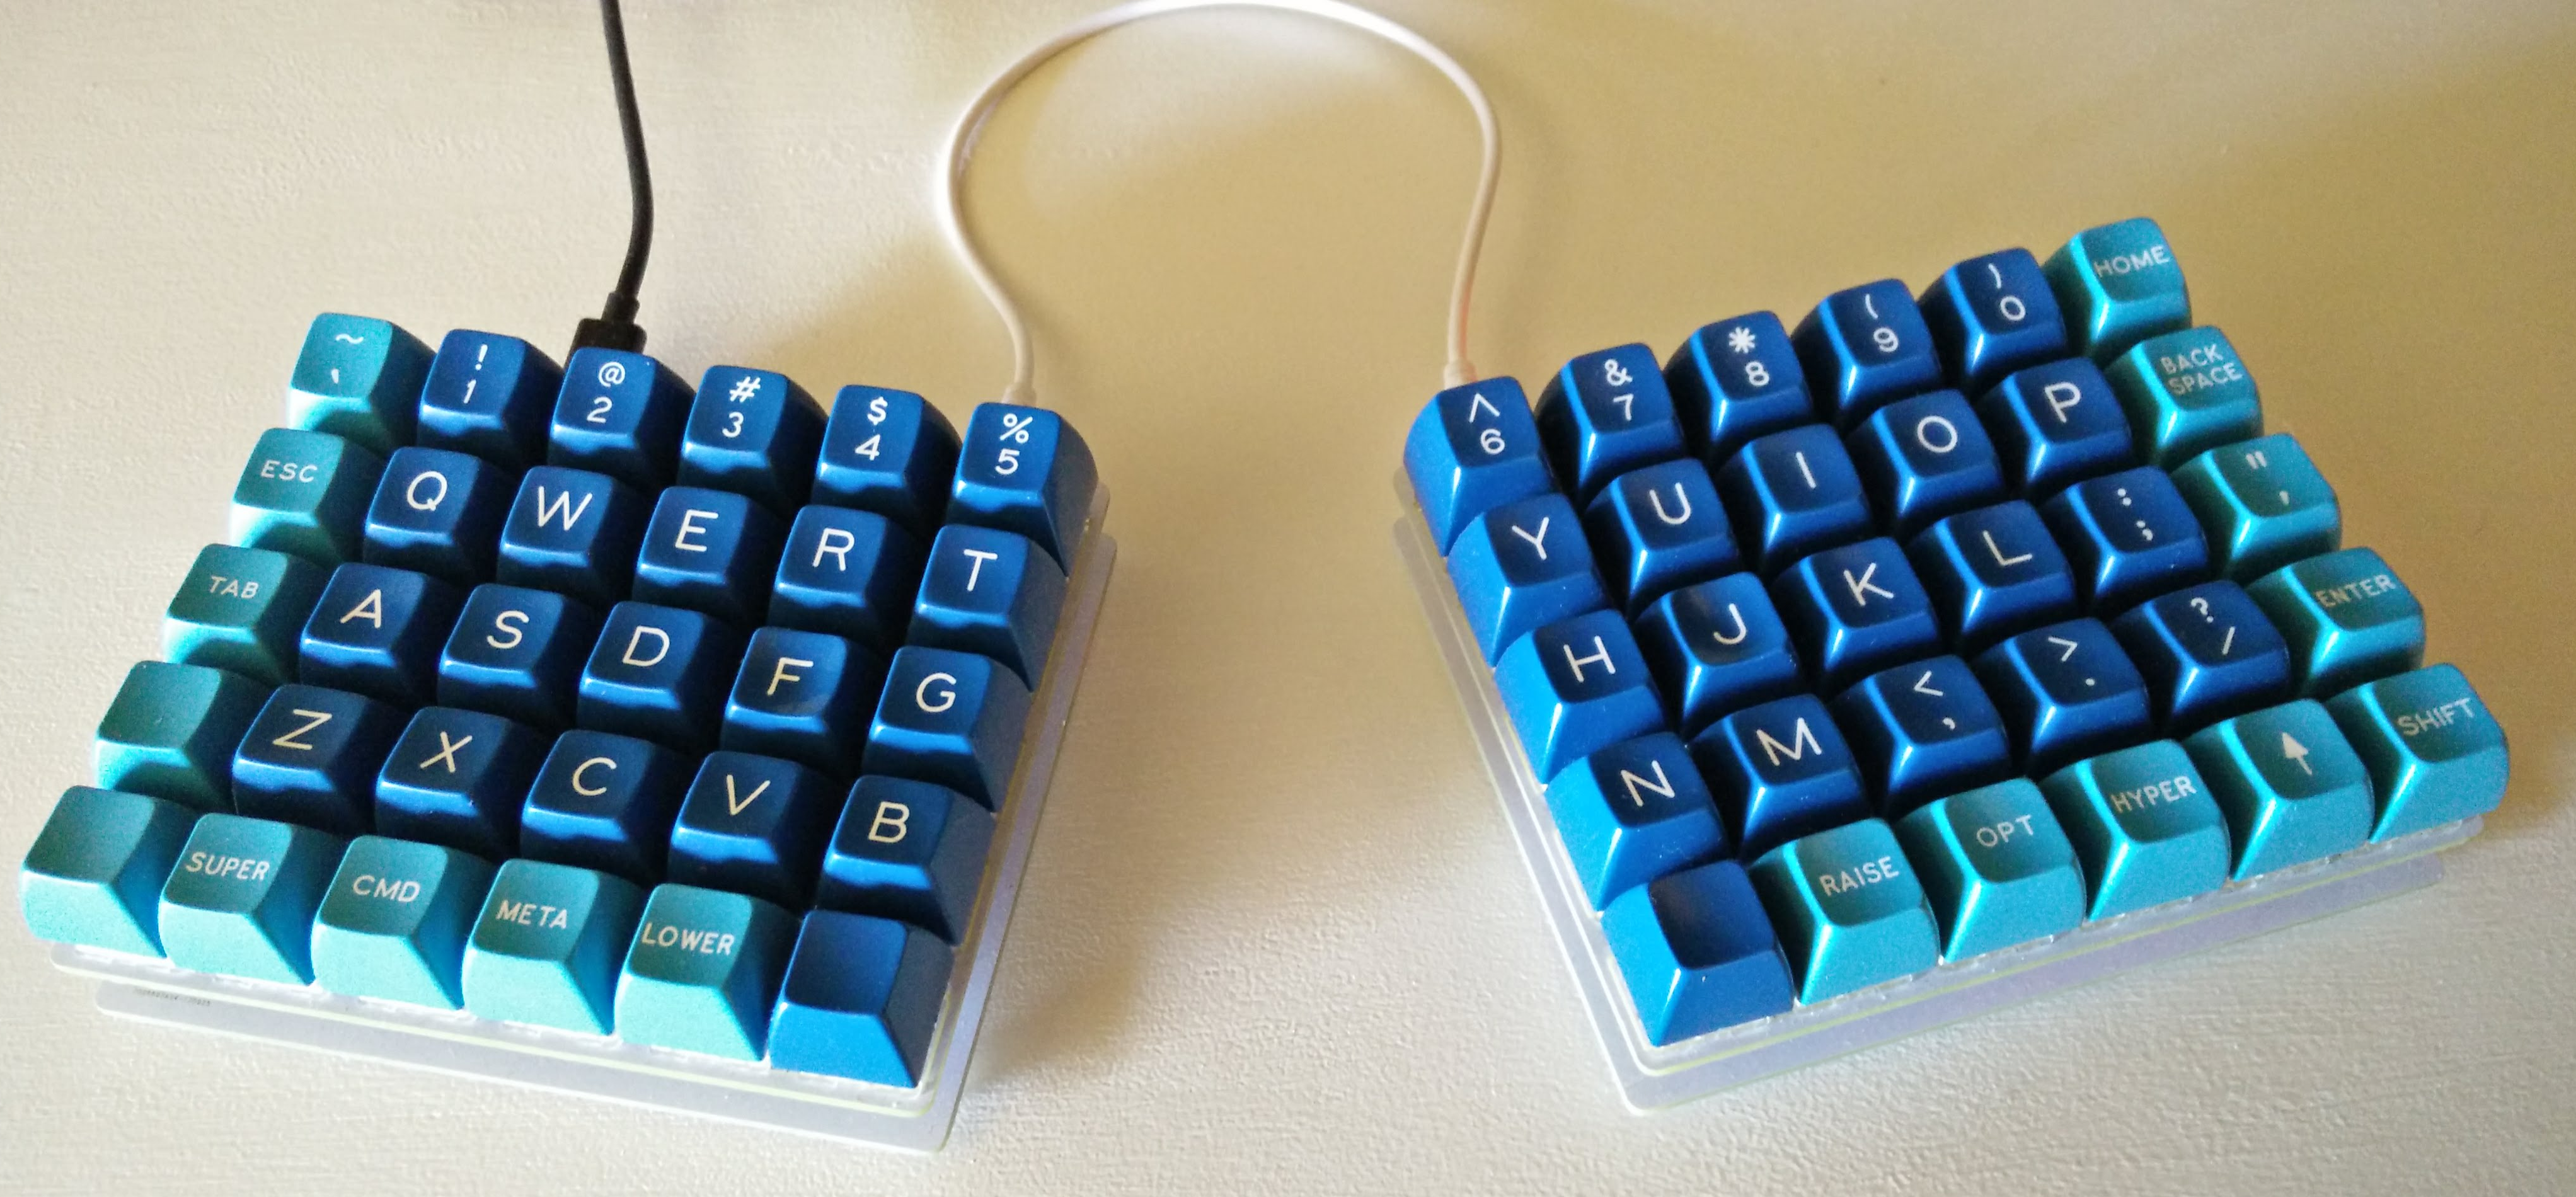 The (infinite) quest for the perfect keyboard and layout